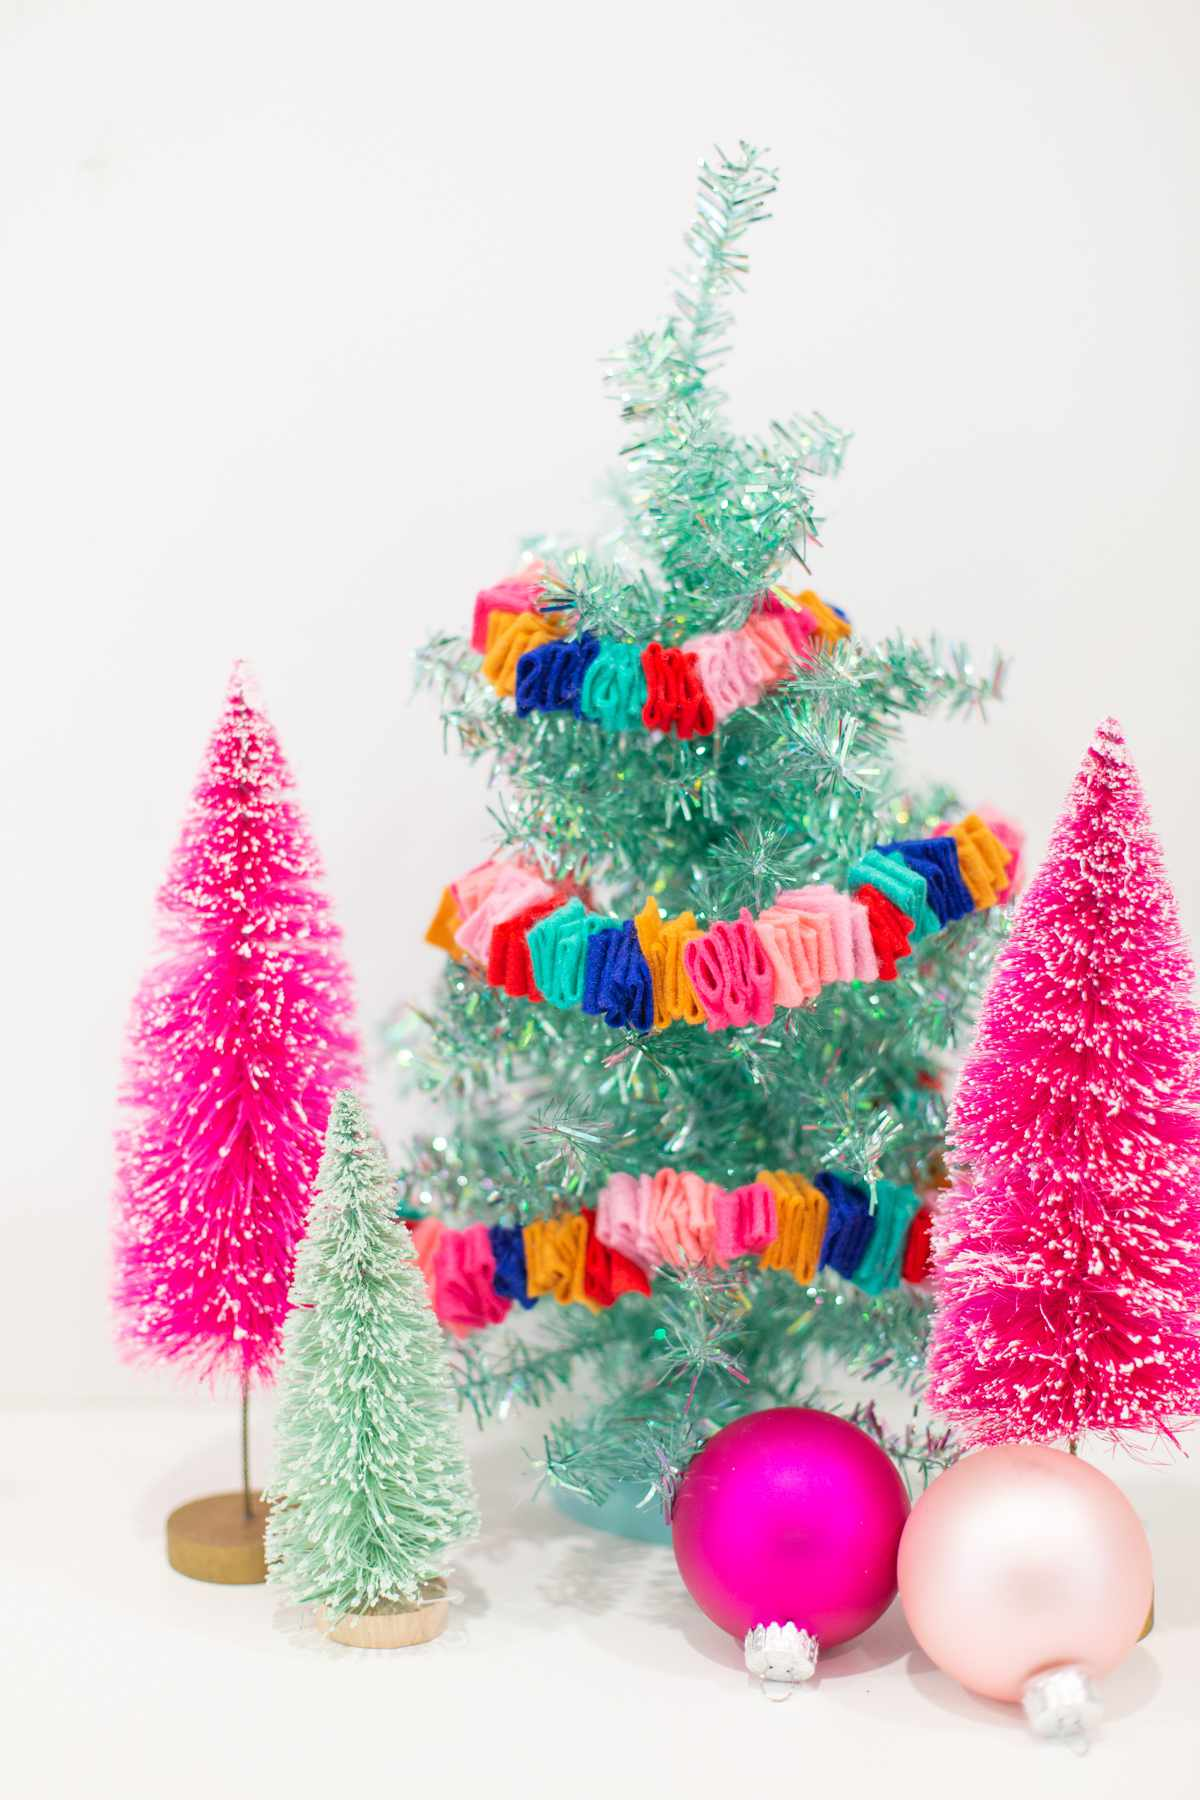 Decorate with a DIY Christmas garland